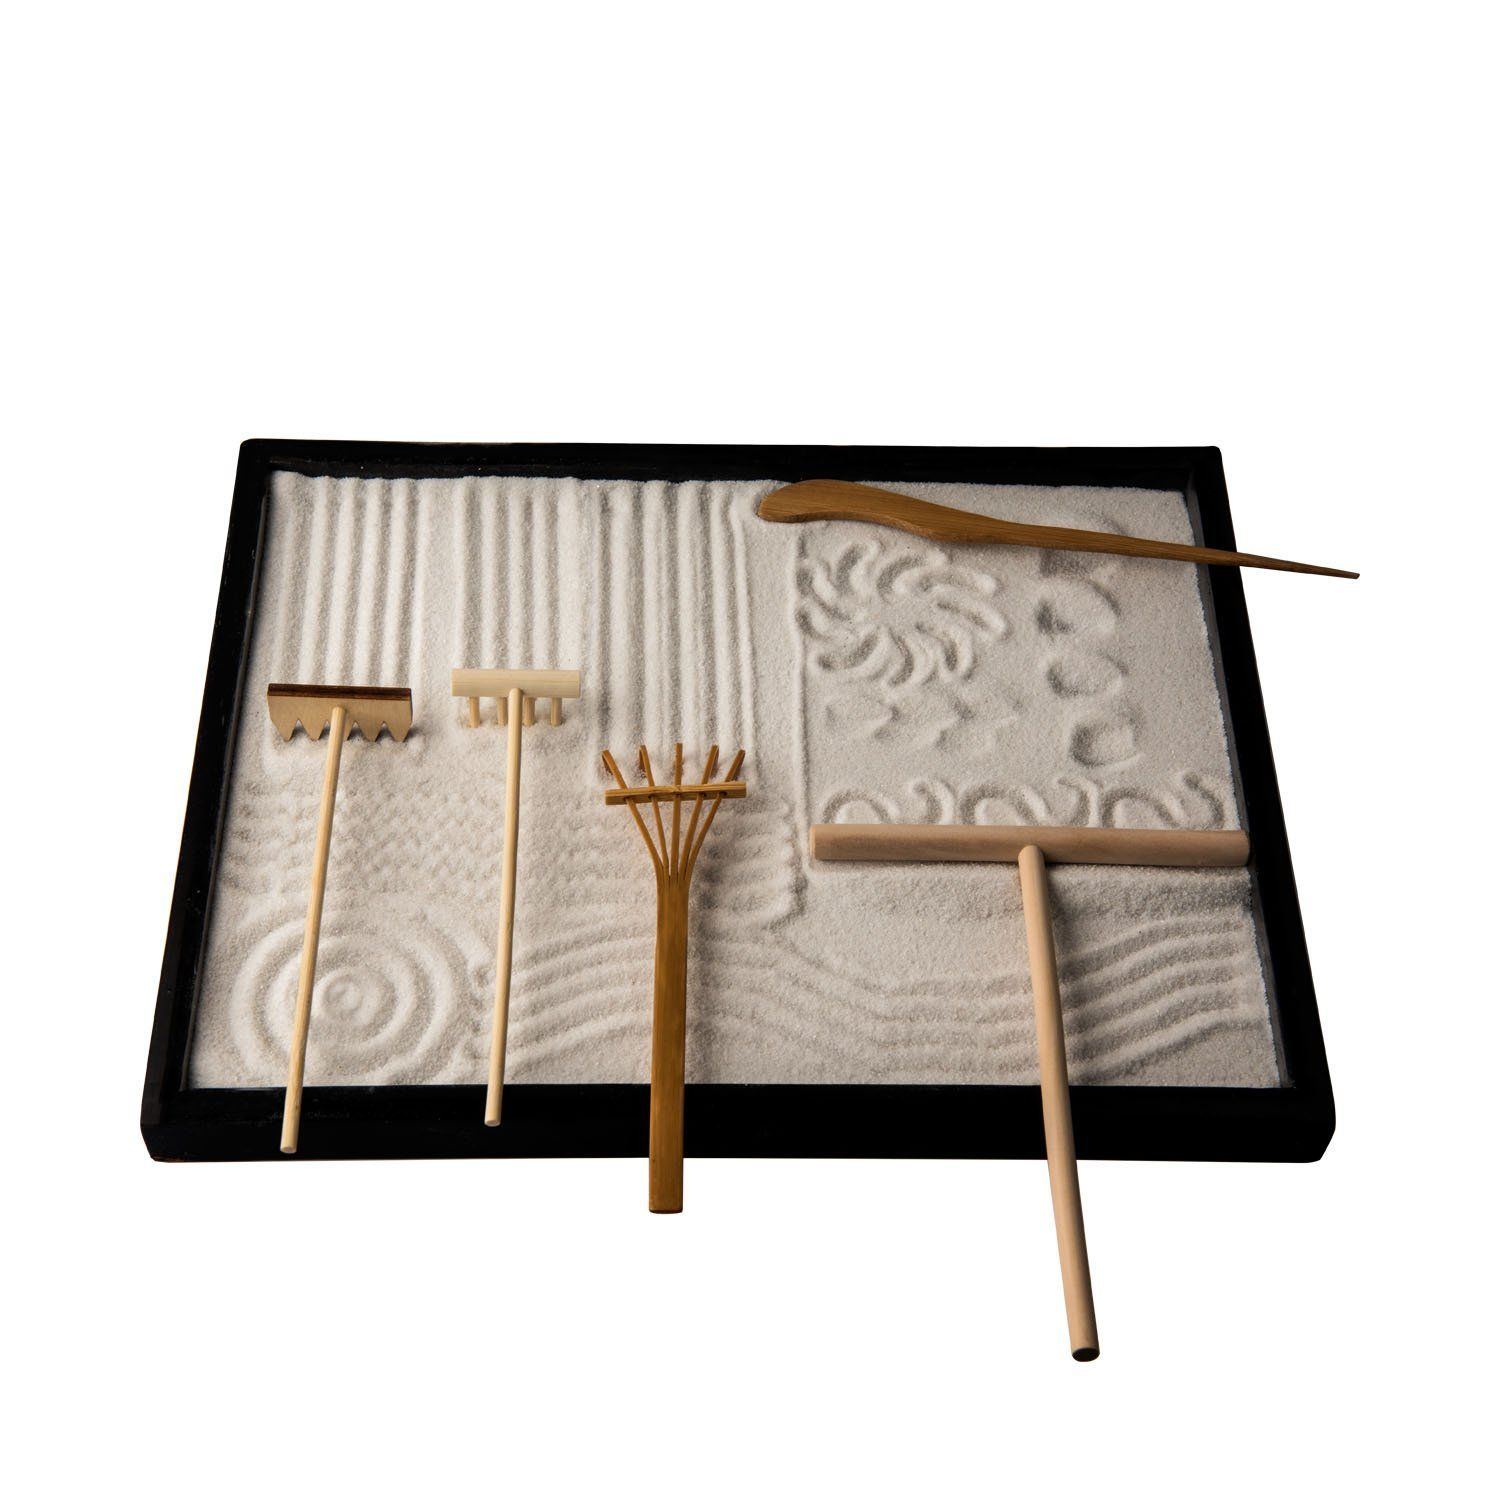 19 99 Professional Mini Zen Garden Rake Tools Set Three Rakes